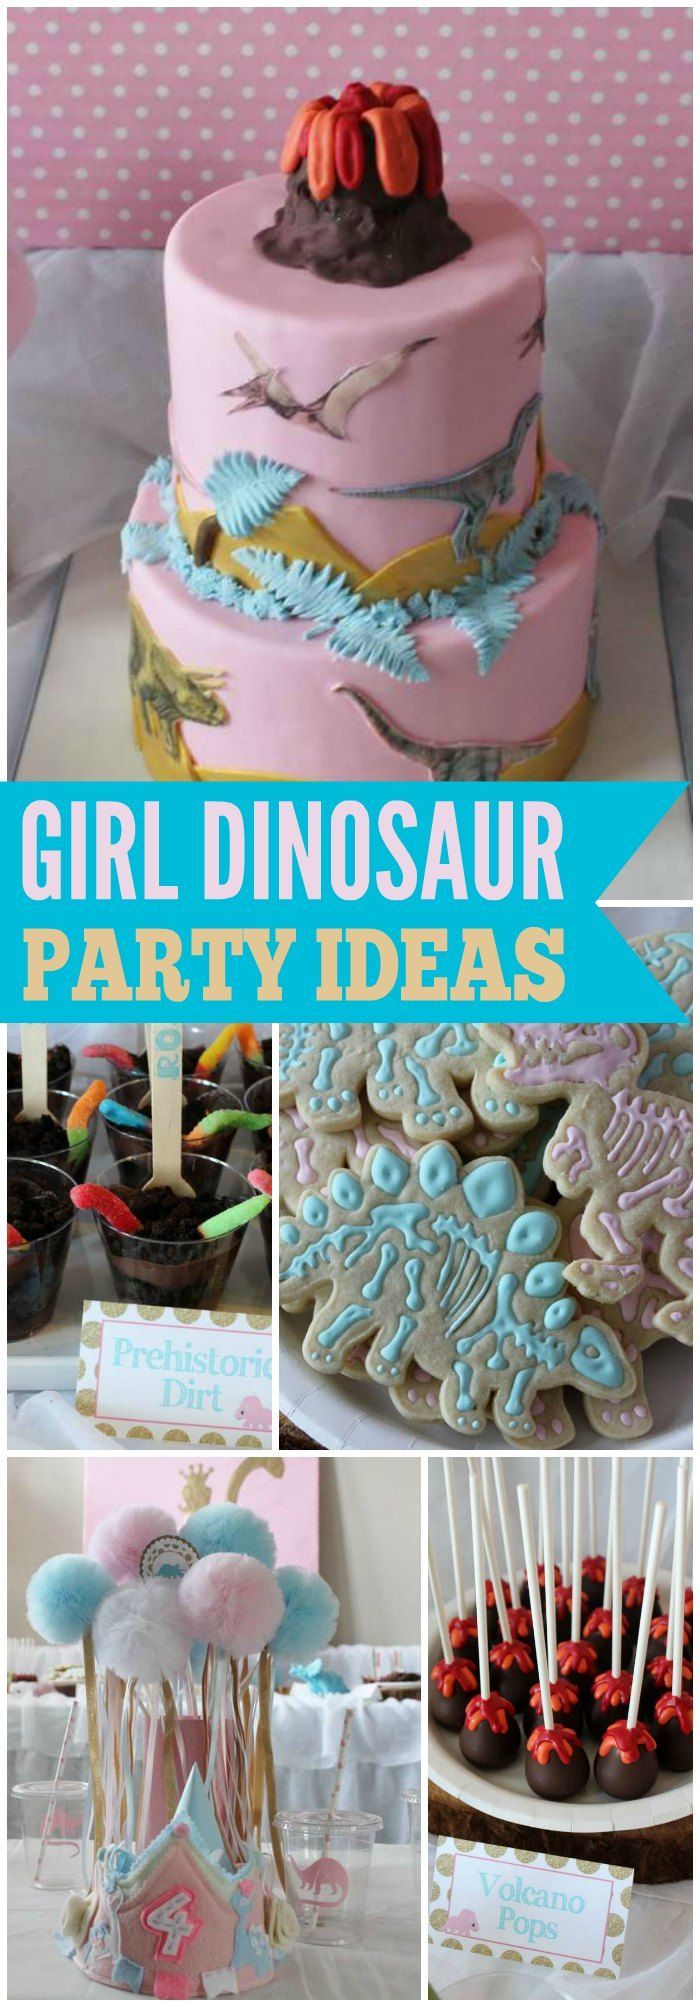 Because girls just can't deal with anything that isn't pastel.